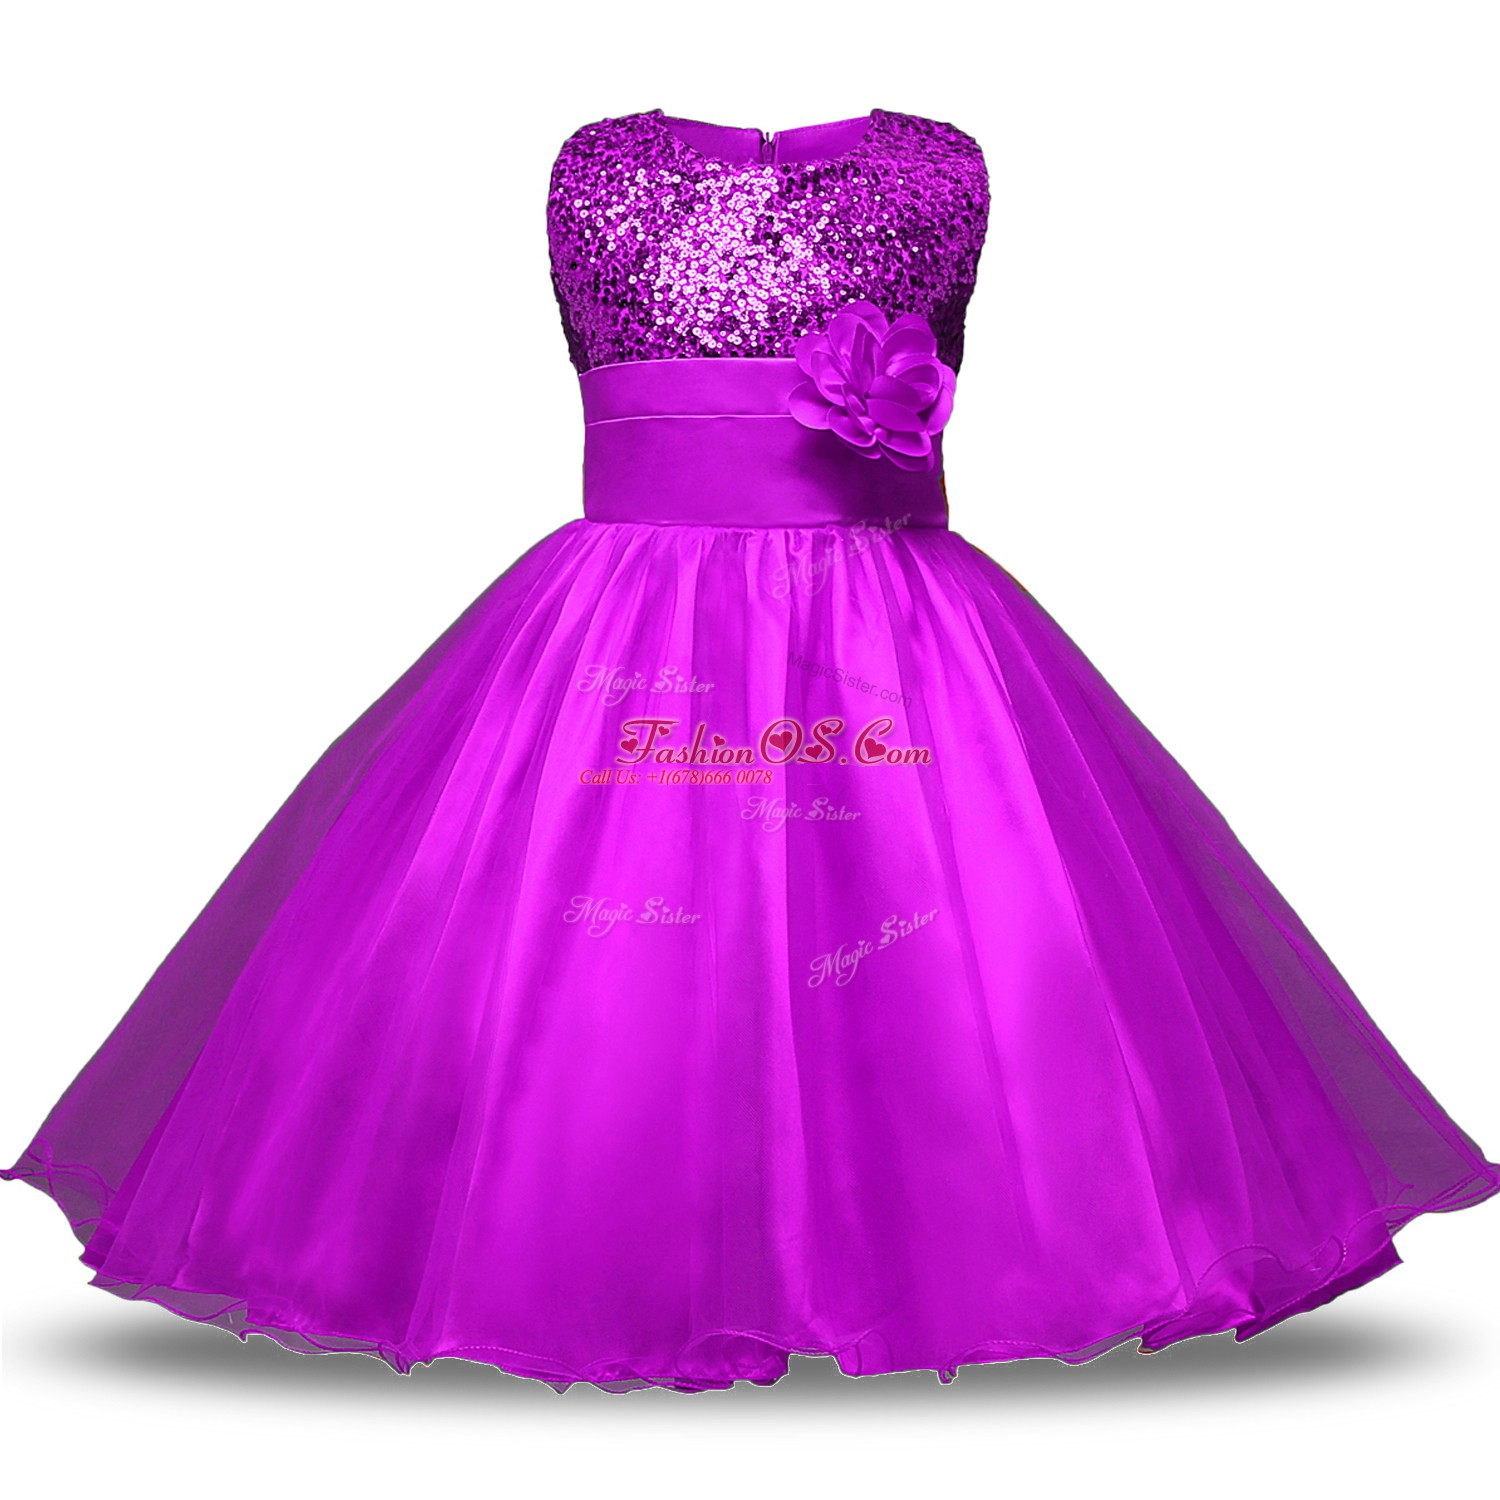 Knee Length Ball Gowns Sleeveless Purple Toddler Flower Girl Dress Zipper